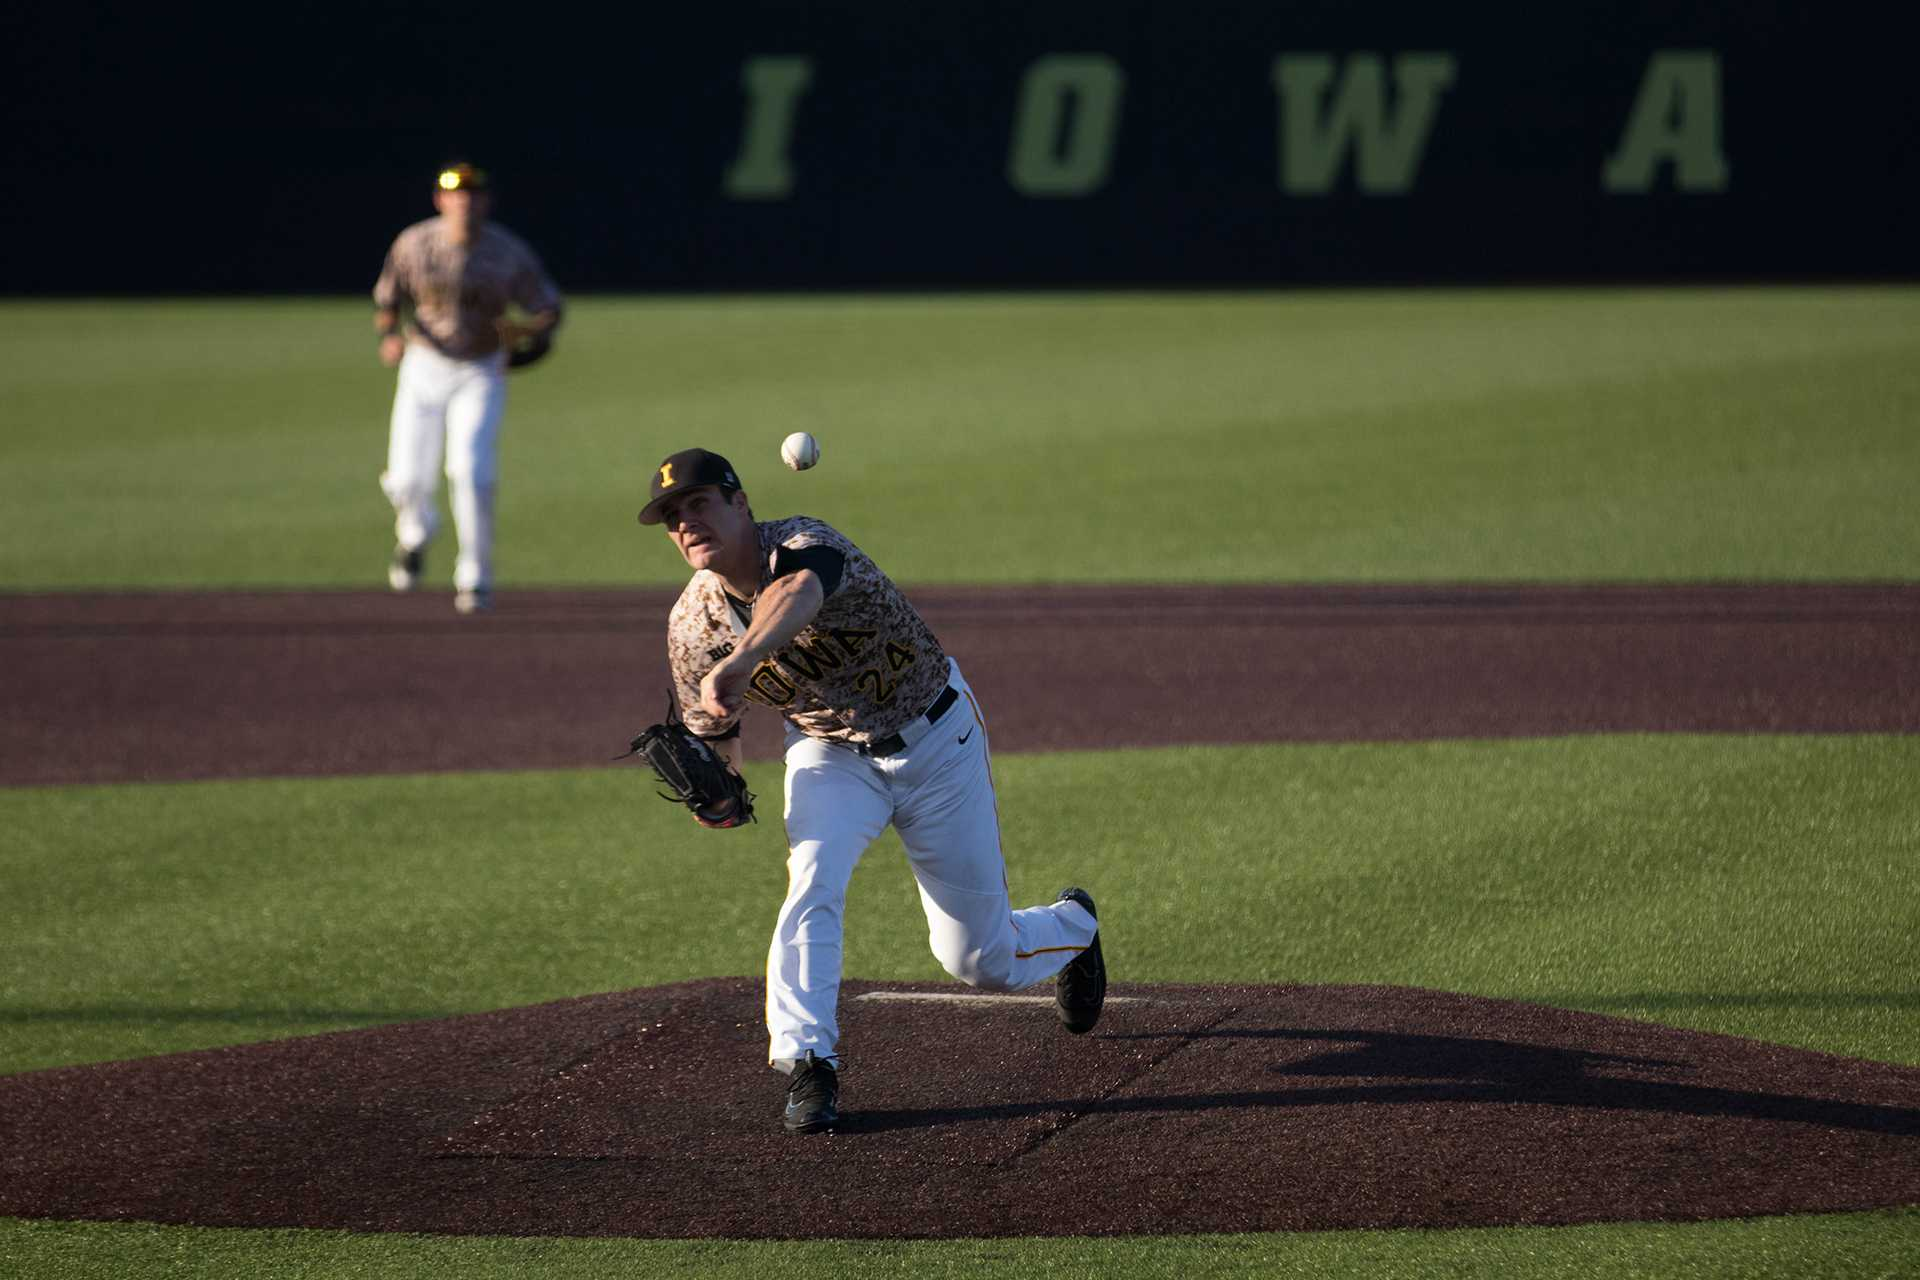 Nick Allgeyer pitches during Iowa's game against Oklahoma State at Banks field on May 4, 2018. The Hawkeyes were defeated 7-6. (Megan Nagorzanski/The Daily Iowan)